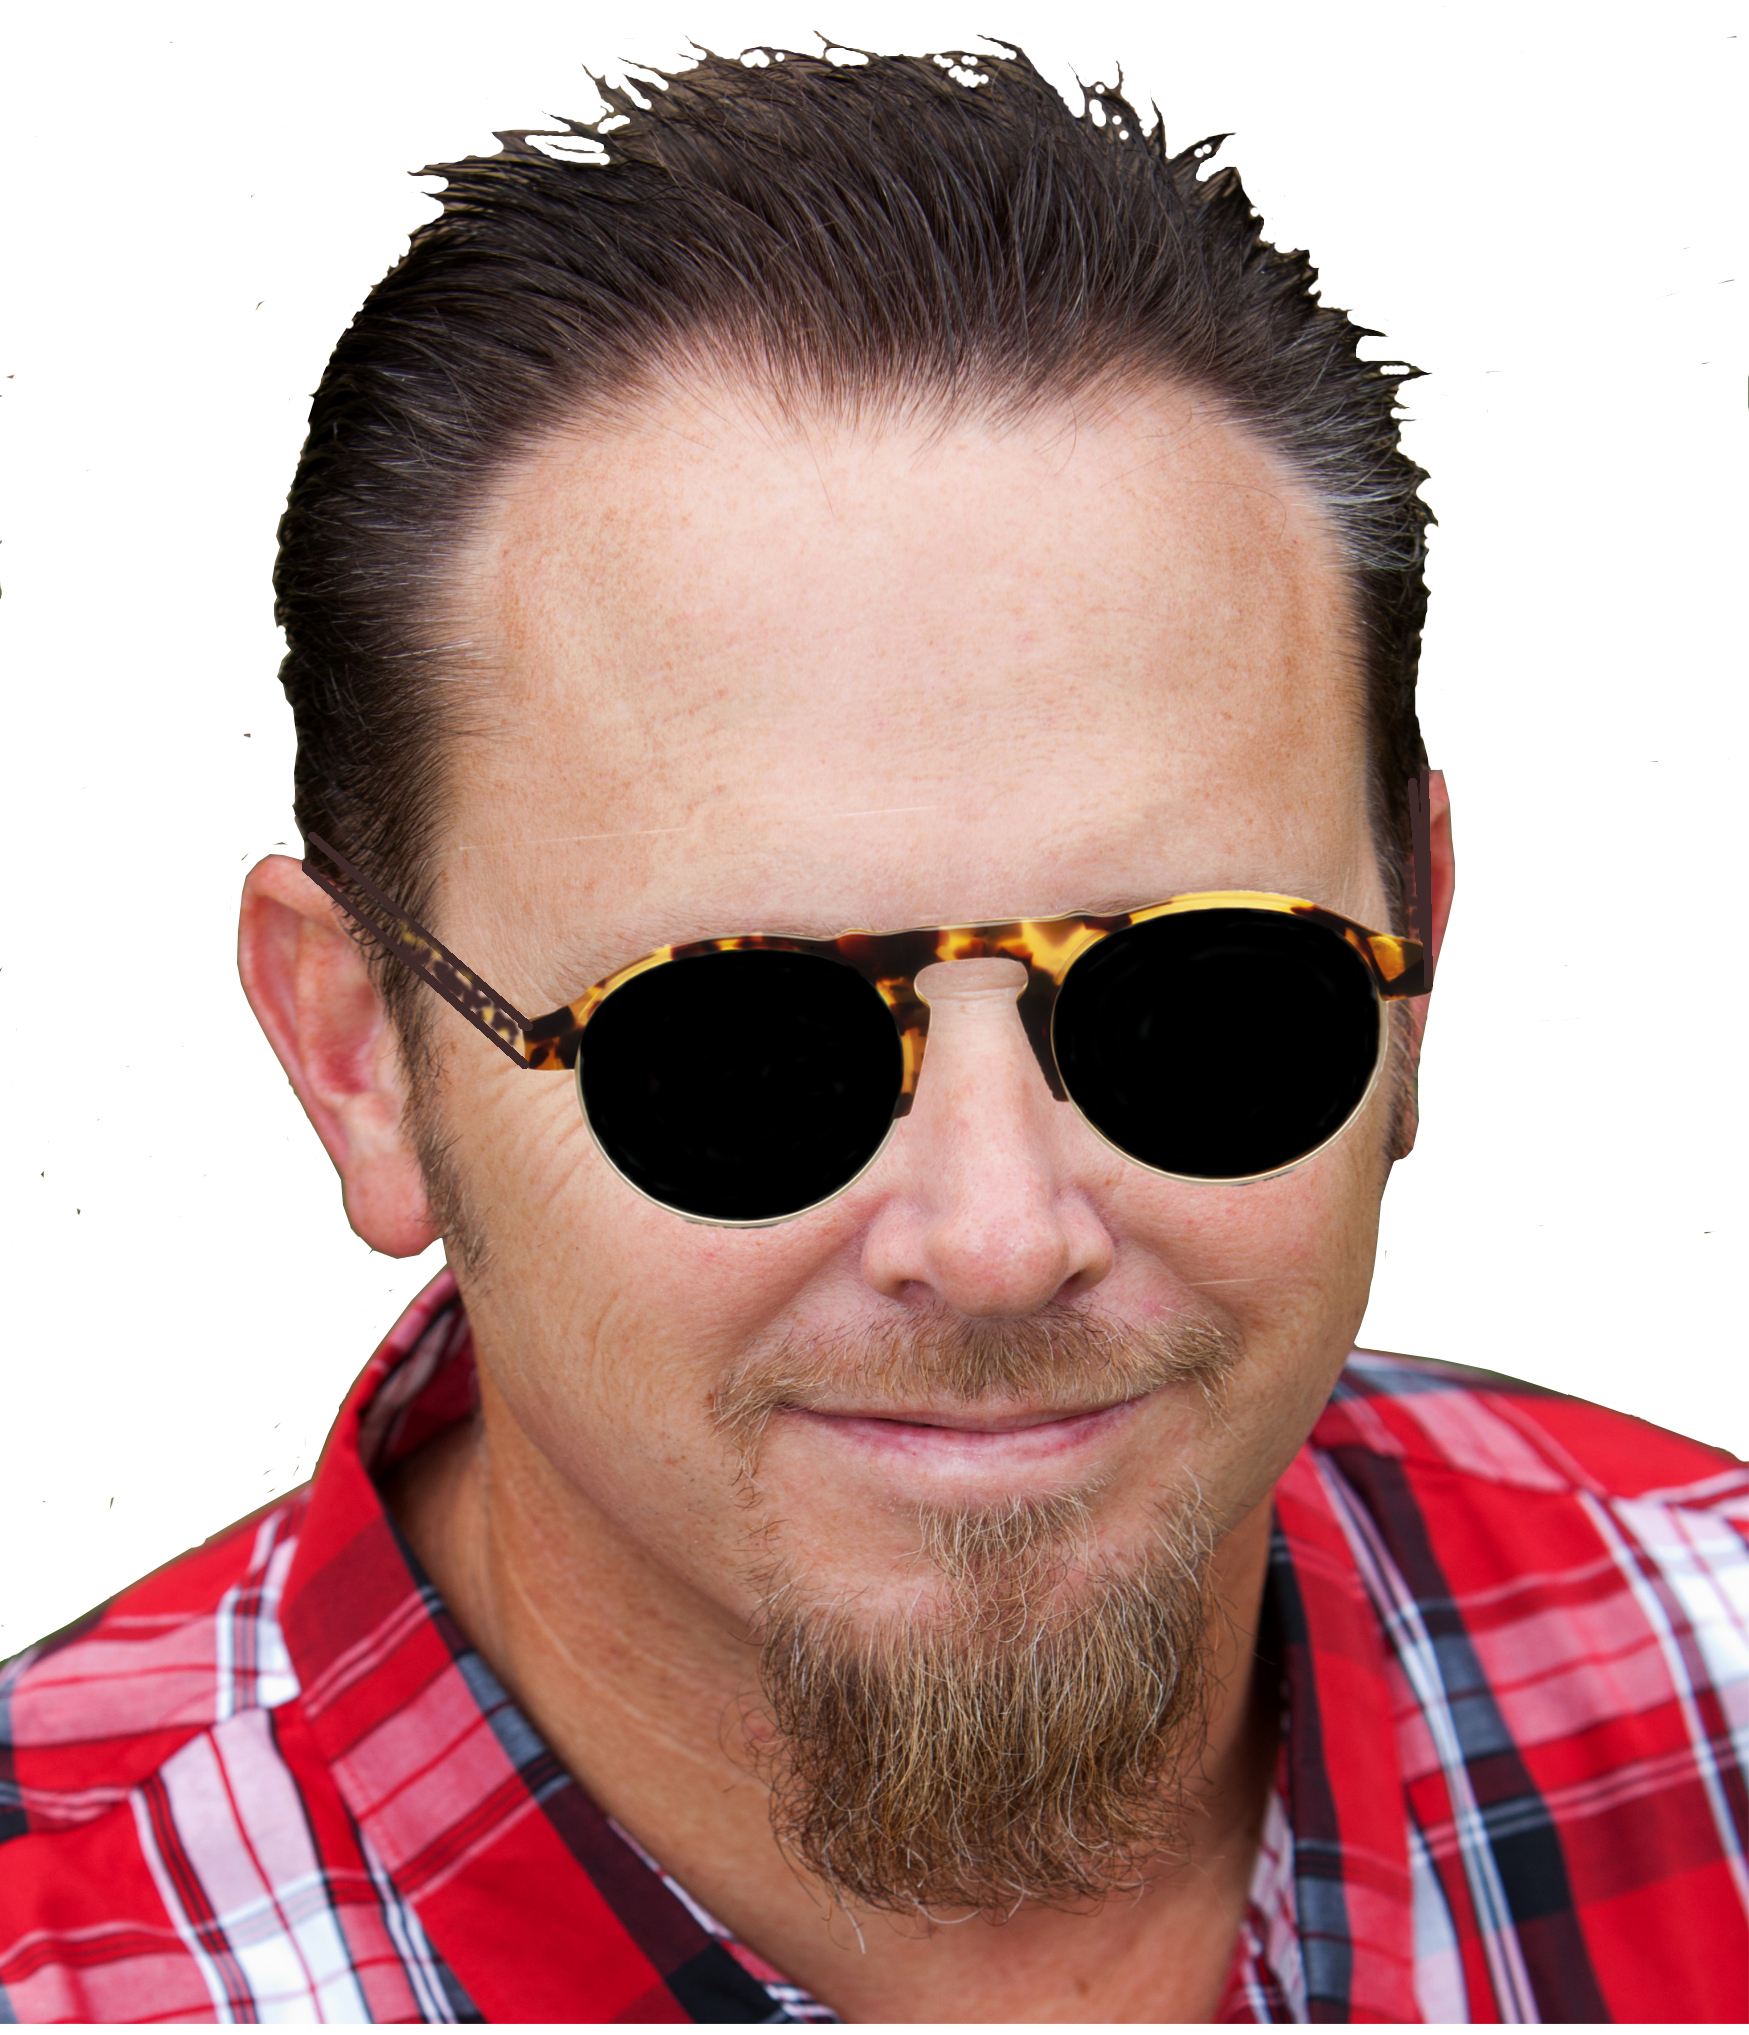 CT headshot-Sunglasses